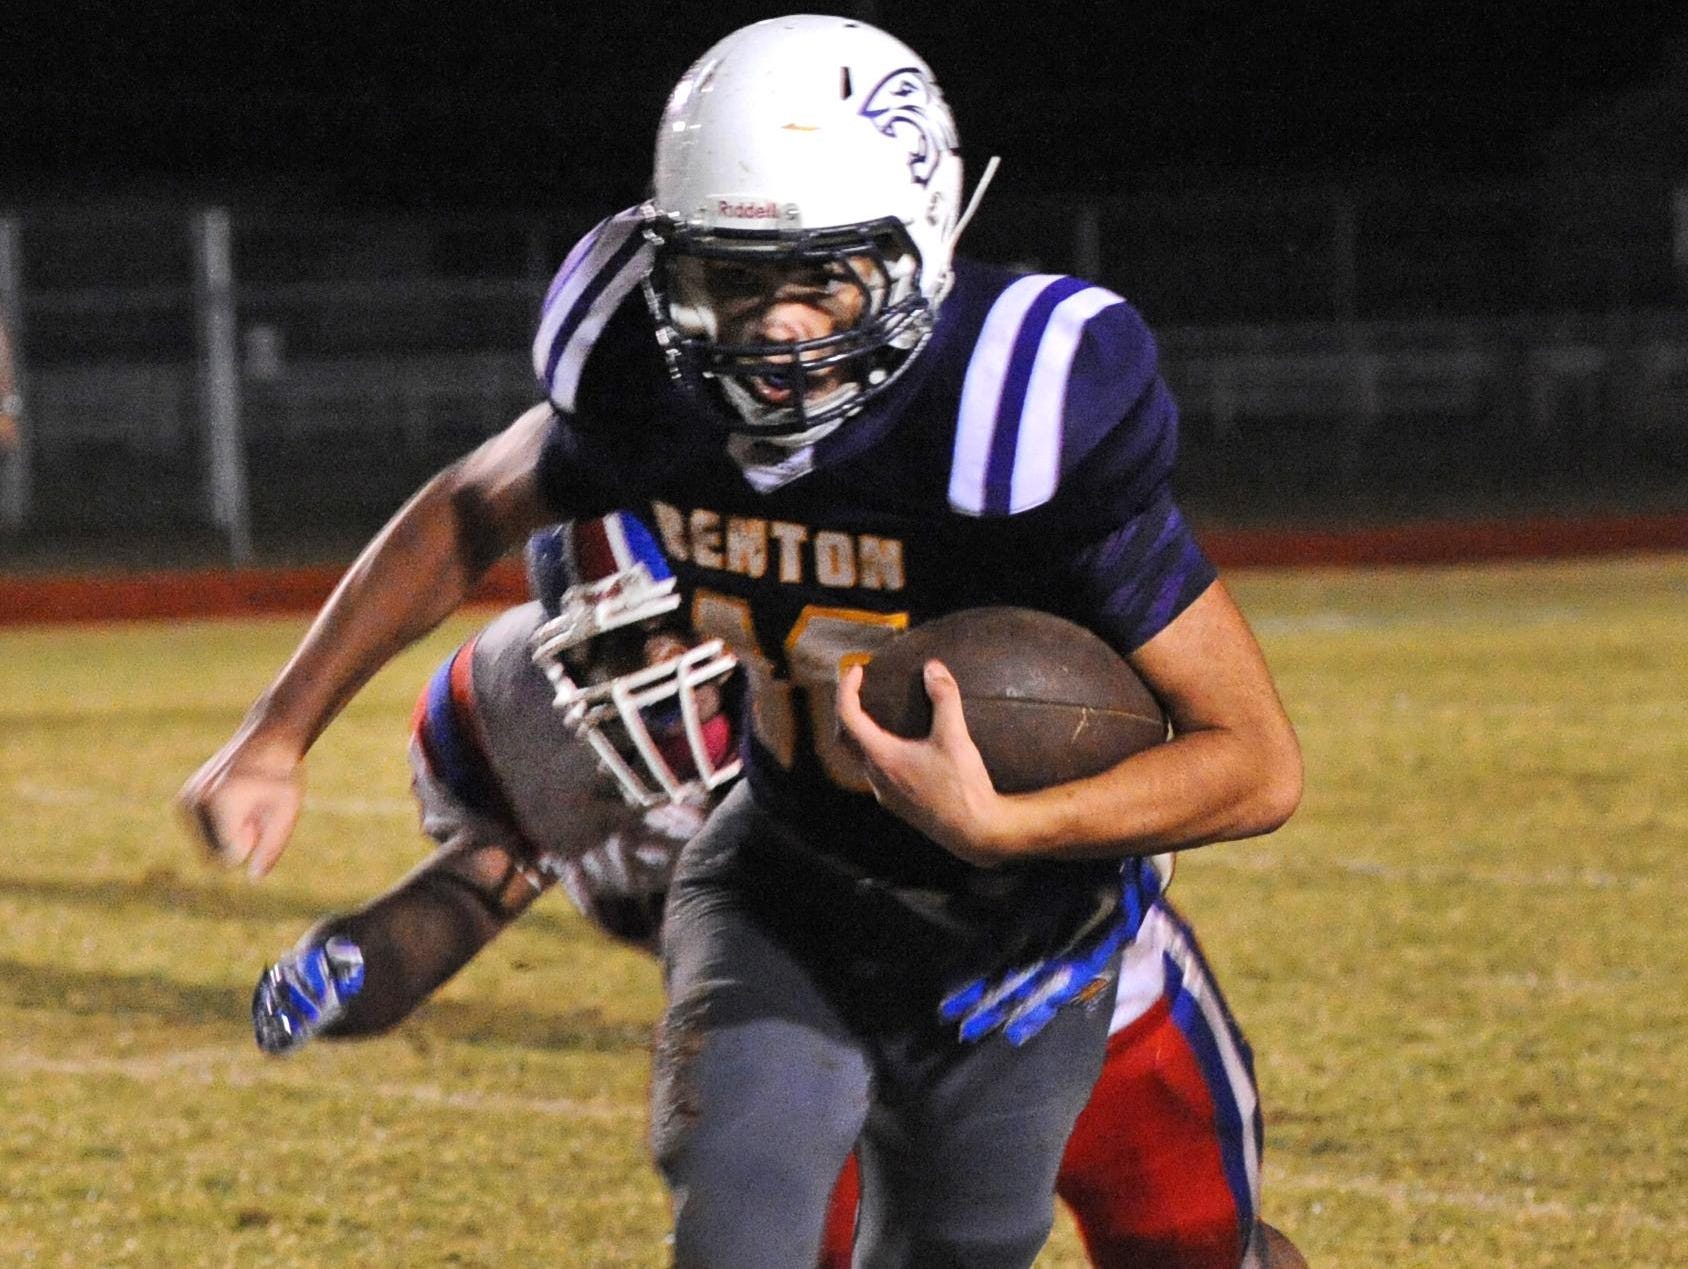 Officials removed at least three allegedly underinflated footballs from Benton during last week's game against Woodlawn.